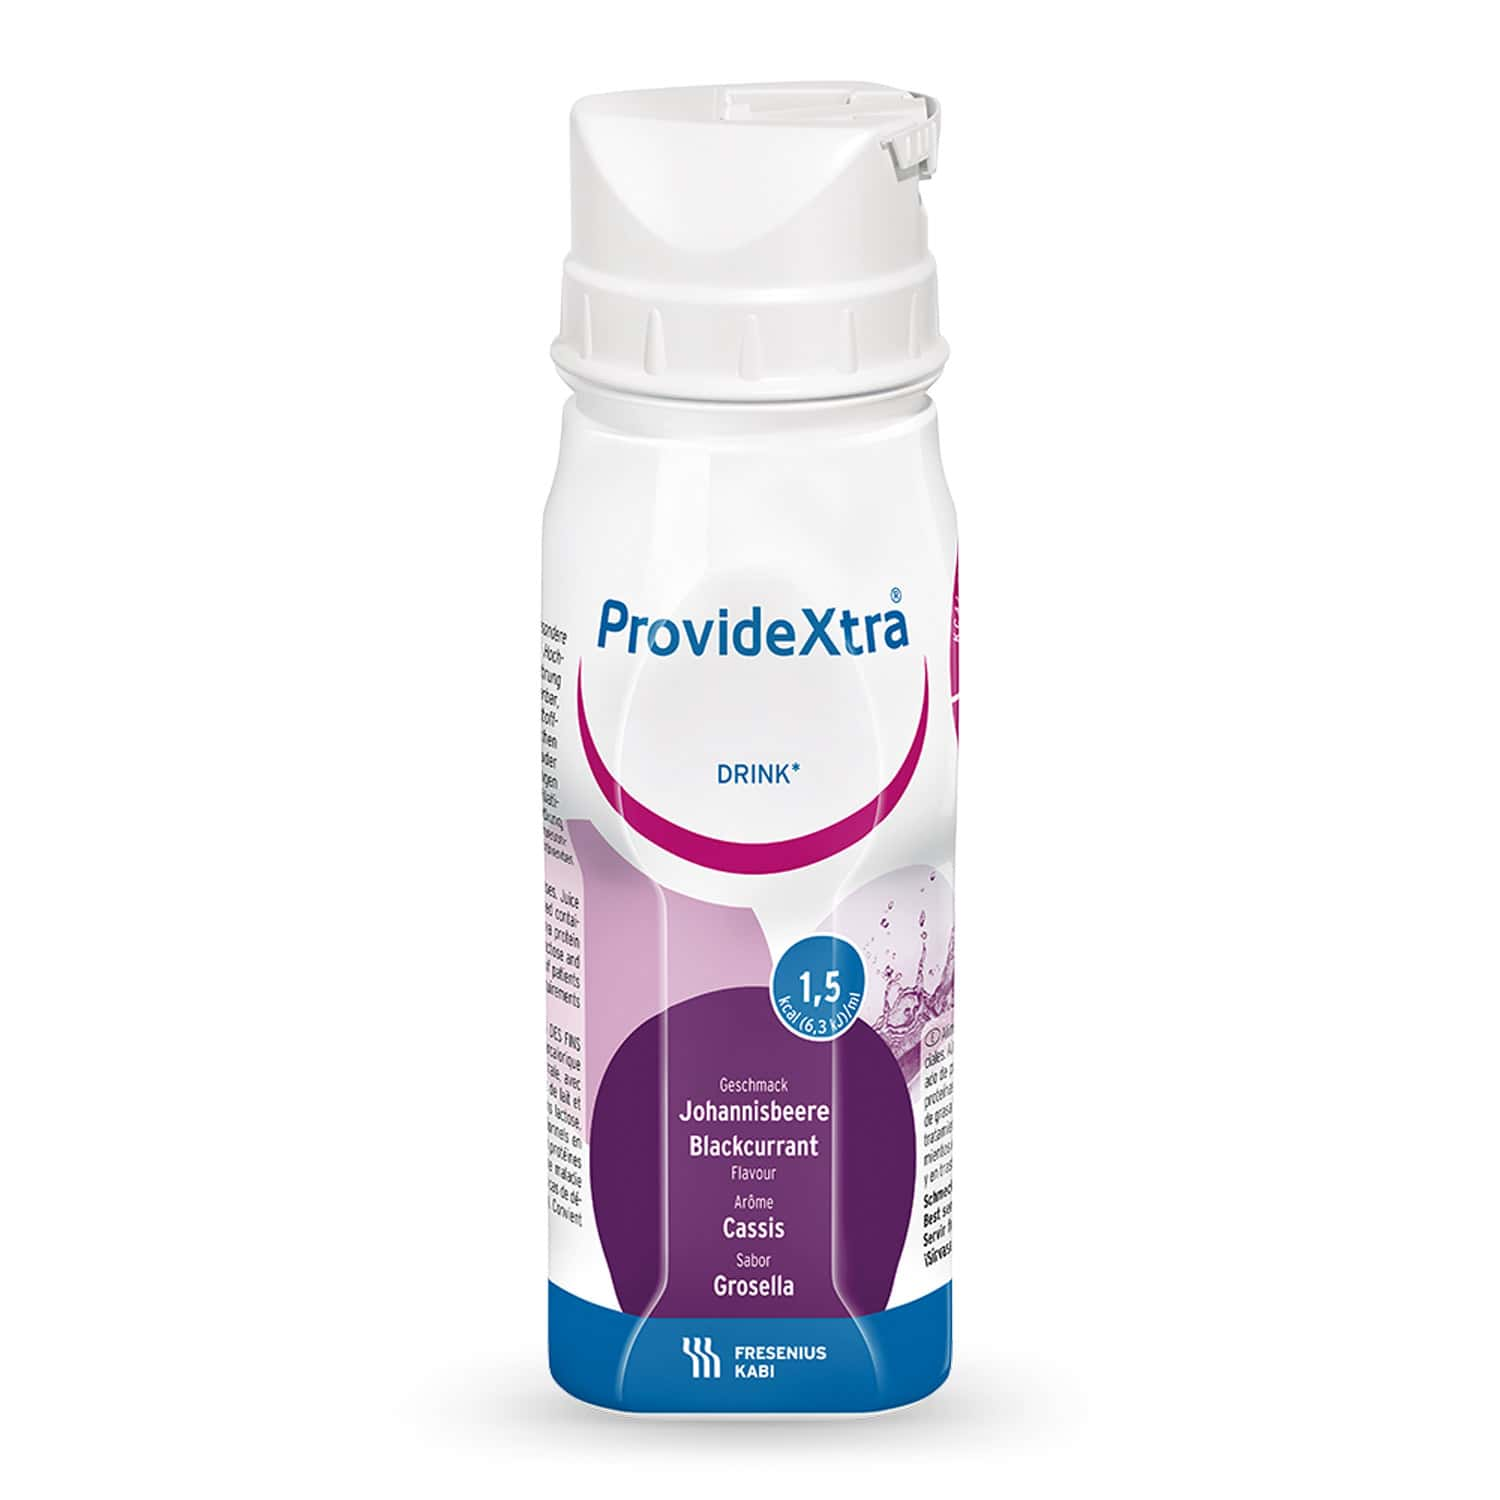 https://static.praxisdienst.com/out/pictures/generated/product/1/1500_1500_100/142183_fresenius_providextra_drink_johannisbeere.jpg